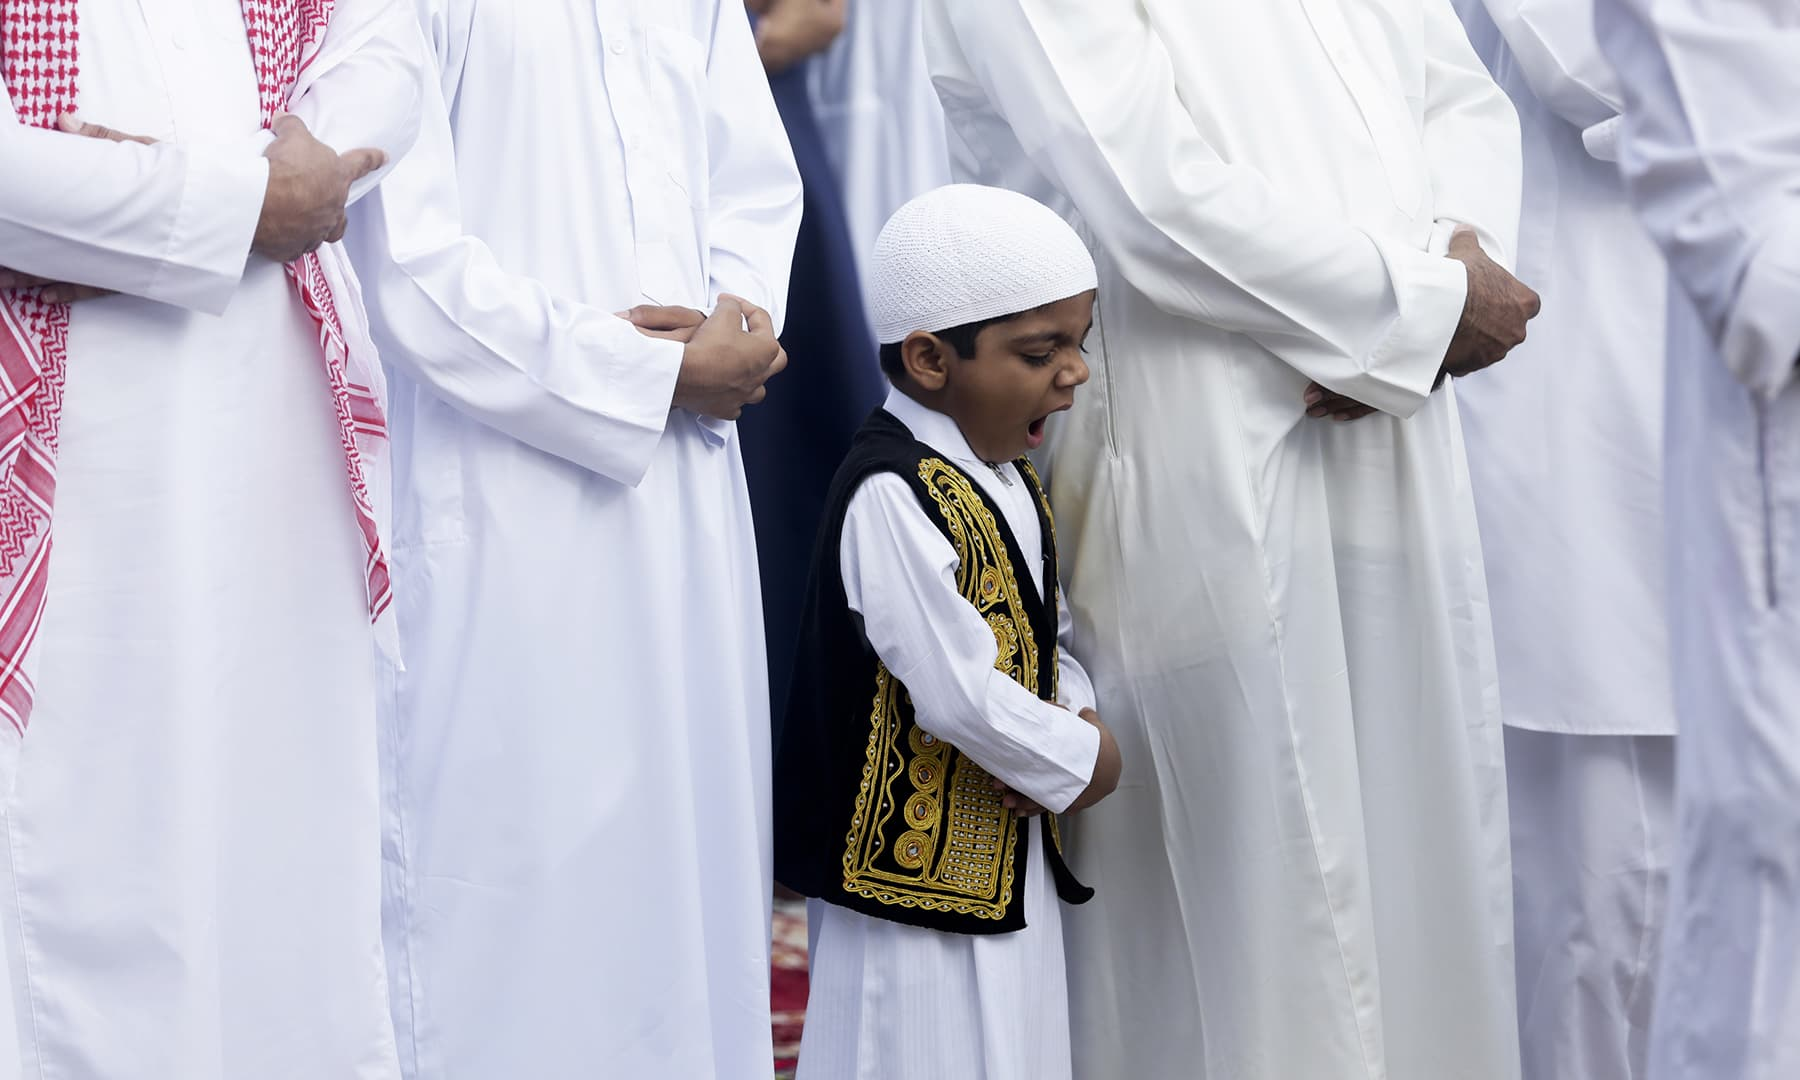 A boy yawns during Eidul Fitr prayers in Panama City on Wednesday, June 5. — AP